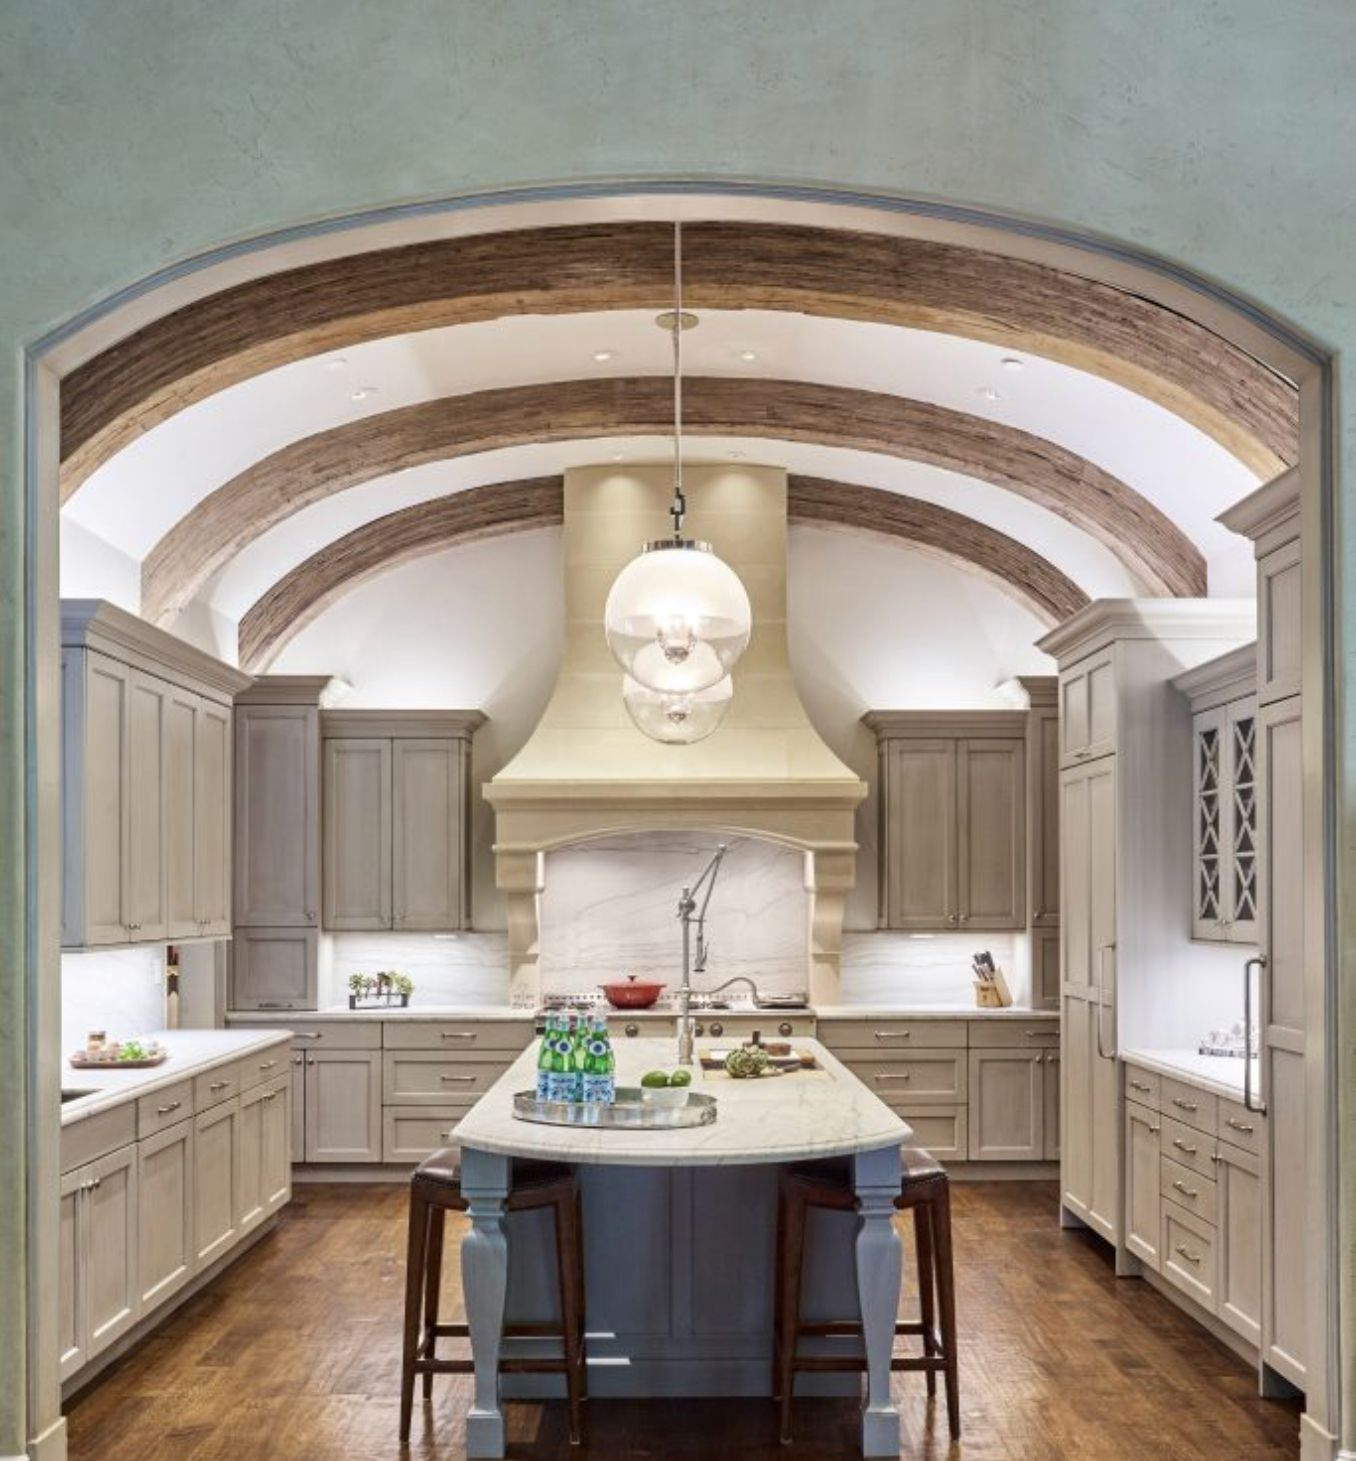 Brookhaven Cabinetry Cabinet Styles Home Kitchens Cabinet Design